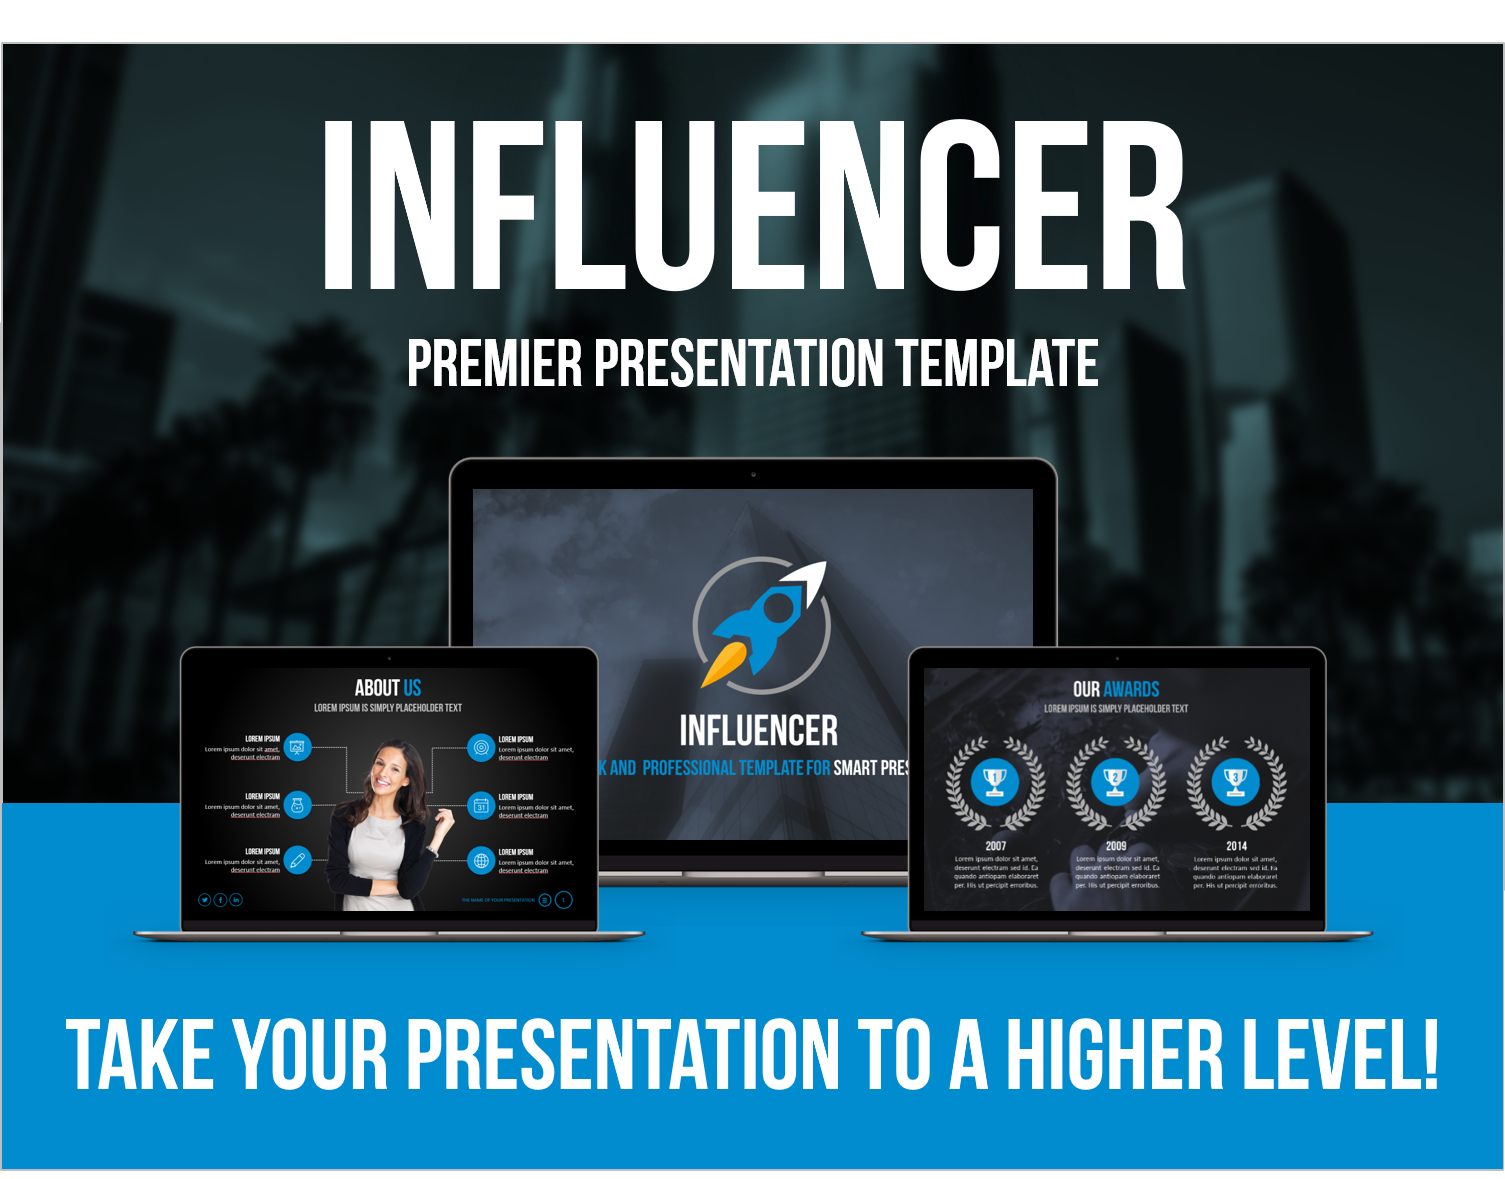 Influencer - the best powerpoint presentation template - pitch deck